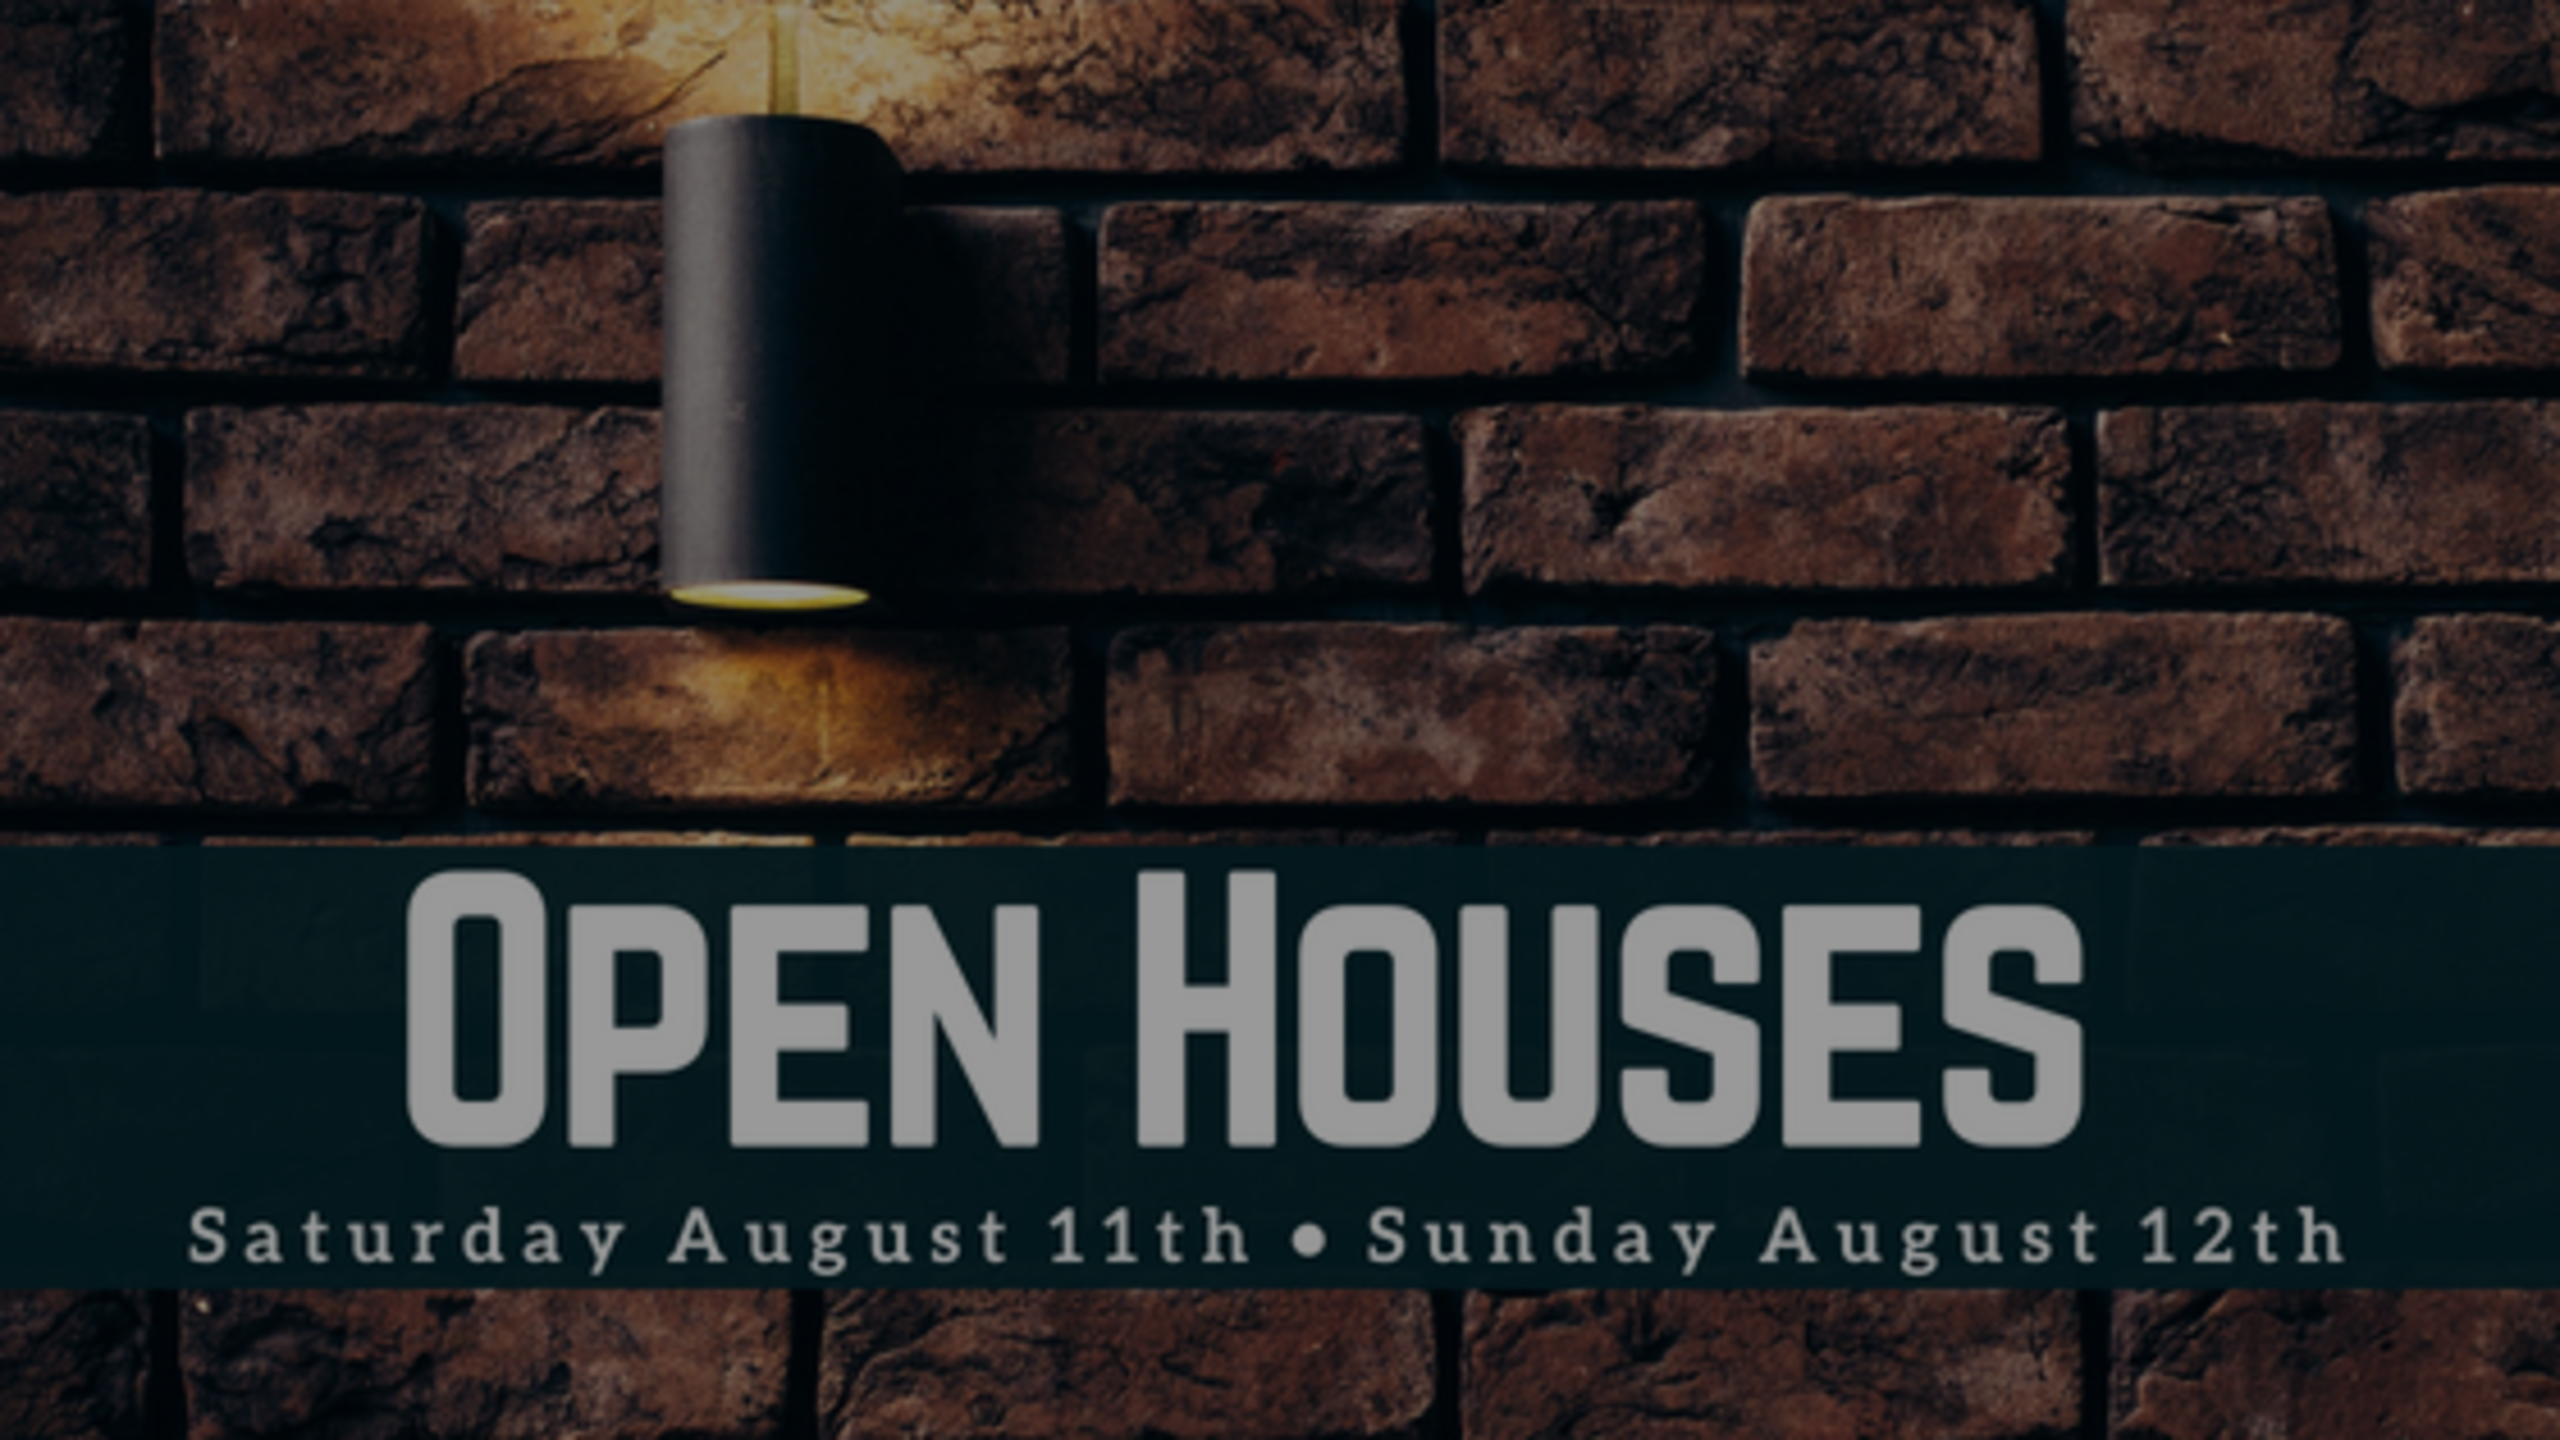 Our Open Houses: Weekend of 8/11 + 8/12